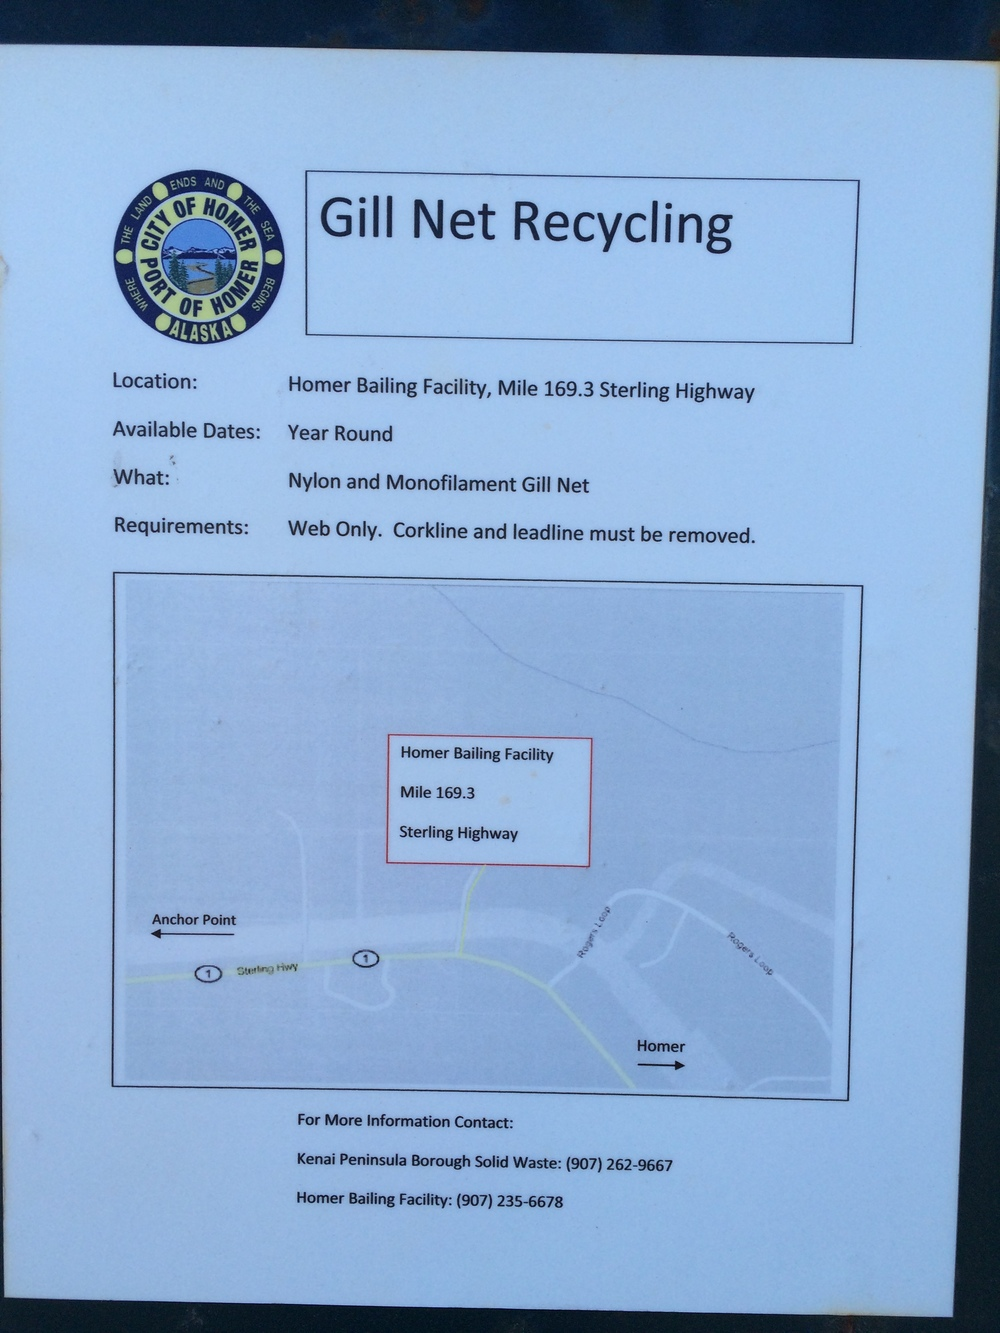 gillnet recycling sign.JPG